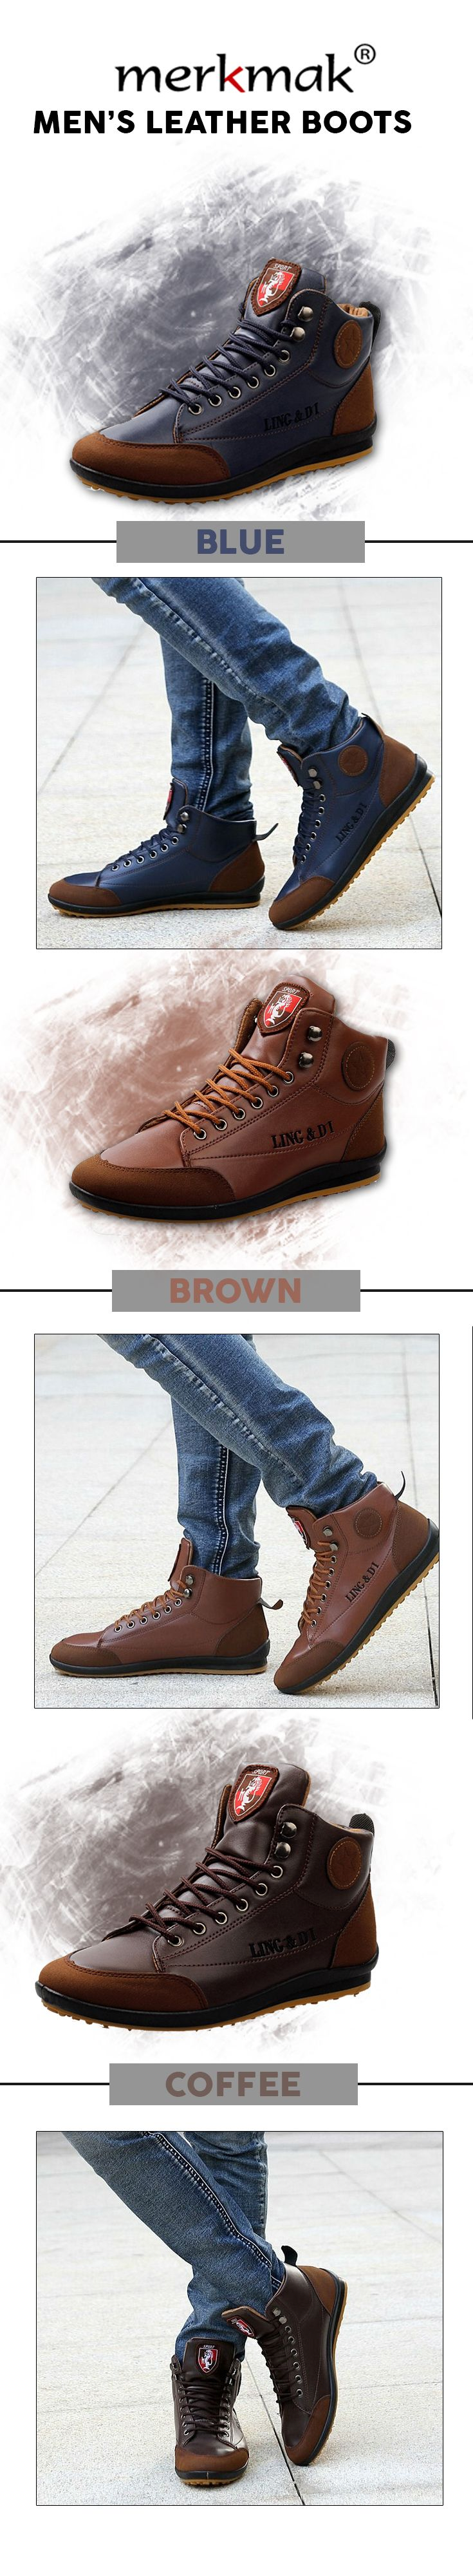 Men's leather high ankle boots - Merkmak fashion leather shoes - Men's top brand style affordable menswear #mensfashion #mensshoes #mensapparel